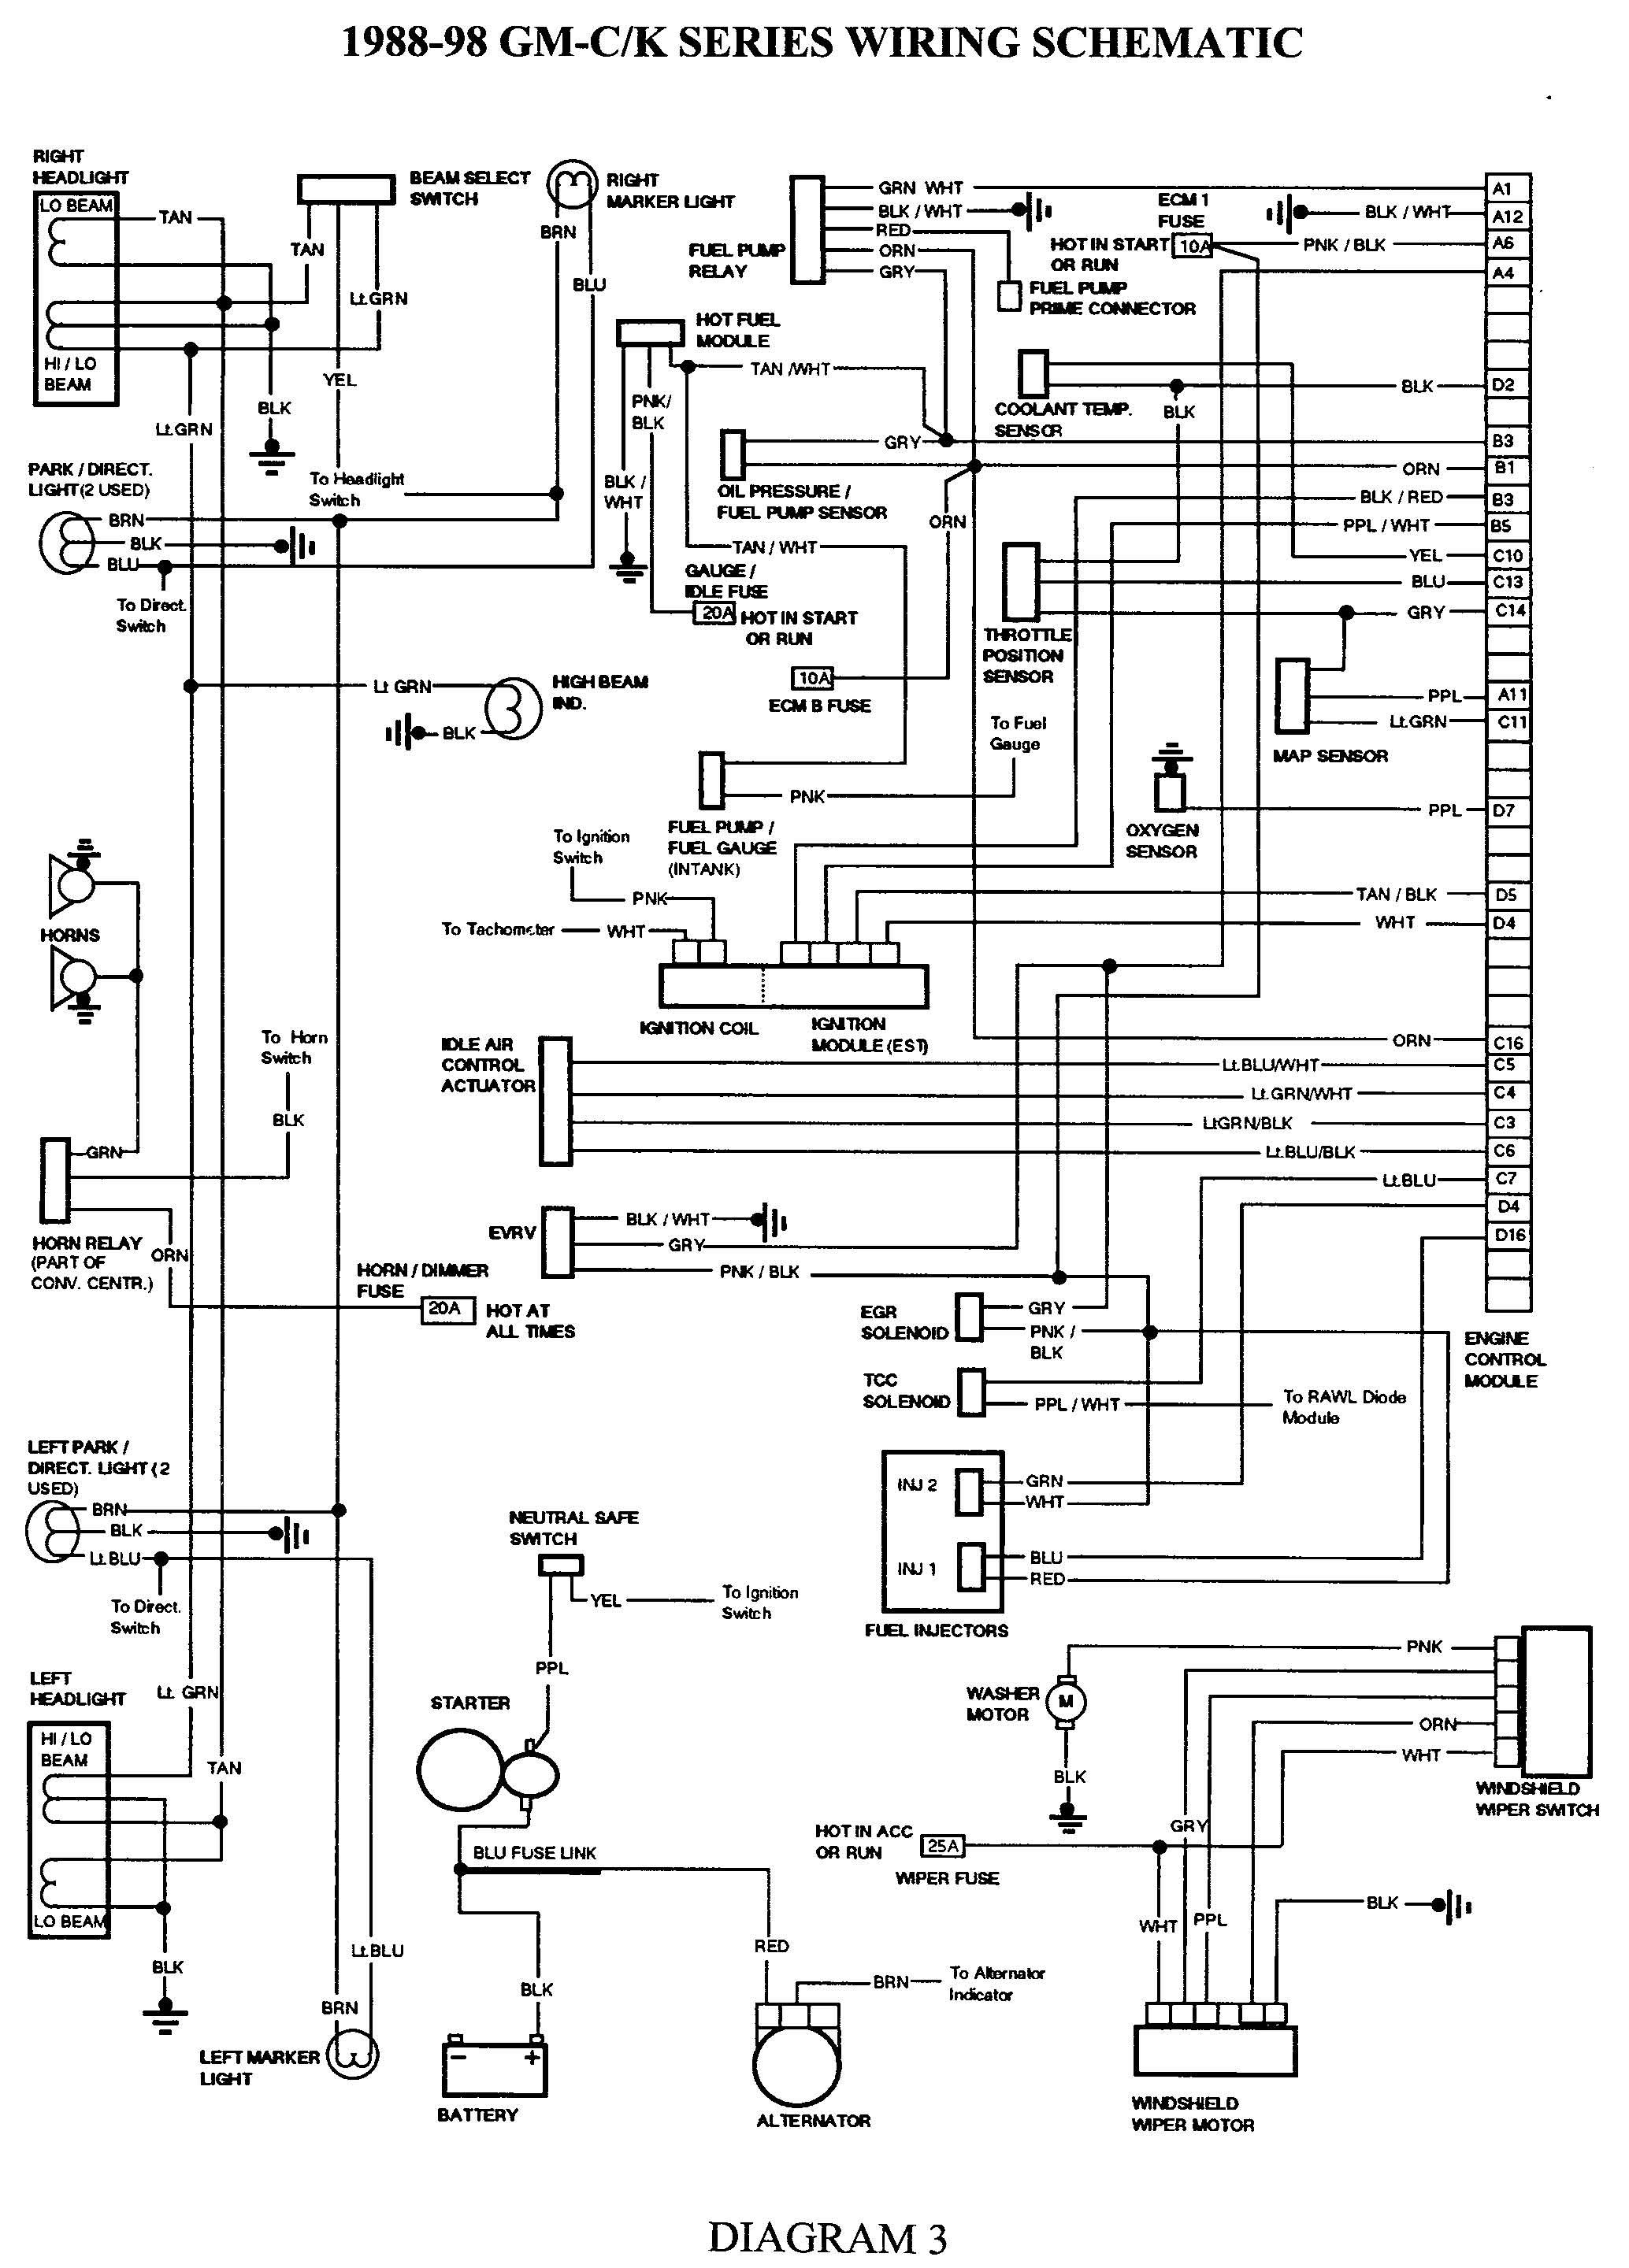 gmc truck wiring diagrams on gm wiring harness diagram 88 98 kc rh pinterest com gmc wiring diagrams free gmc wiring diagram for trailer